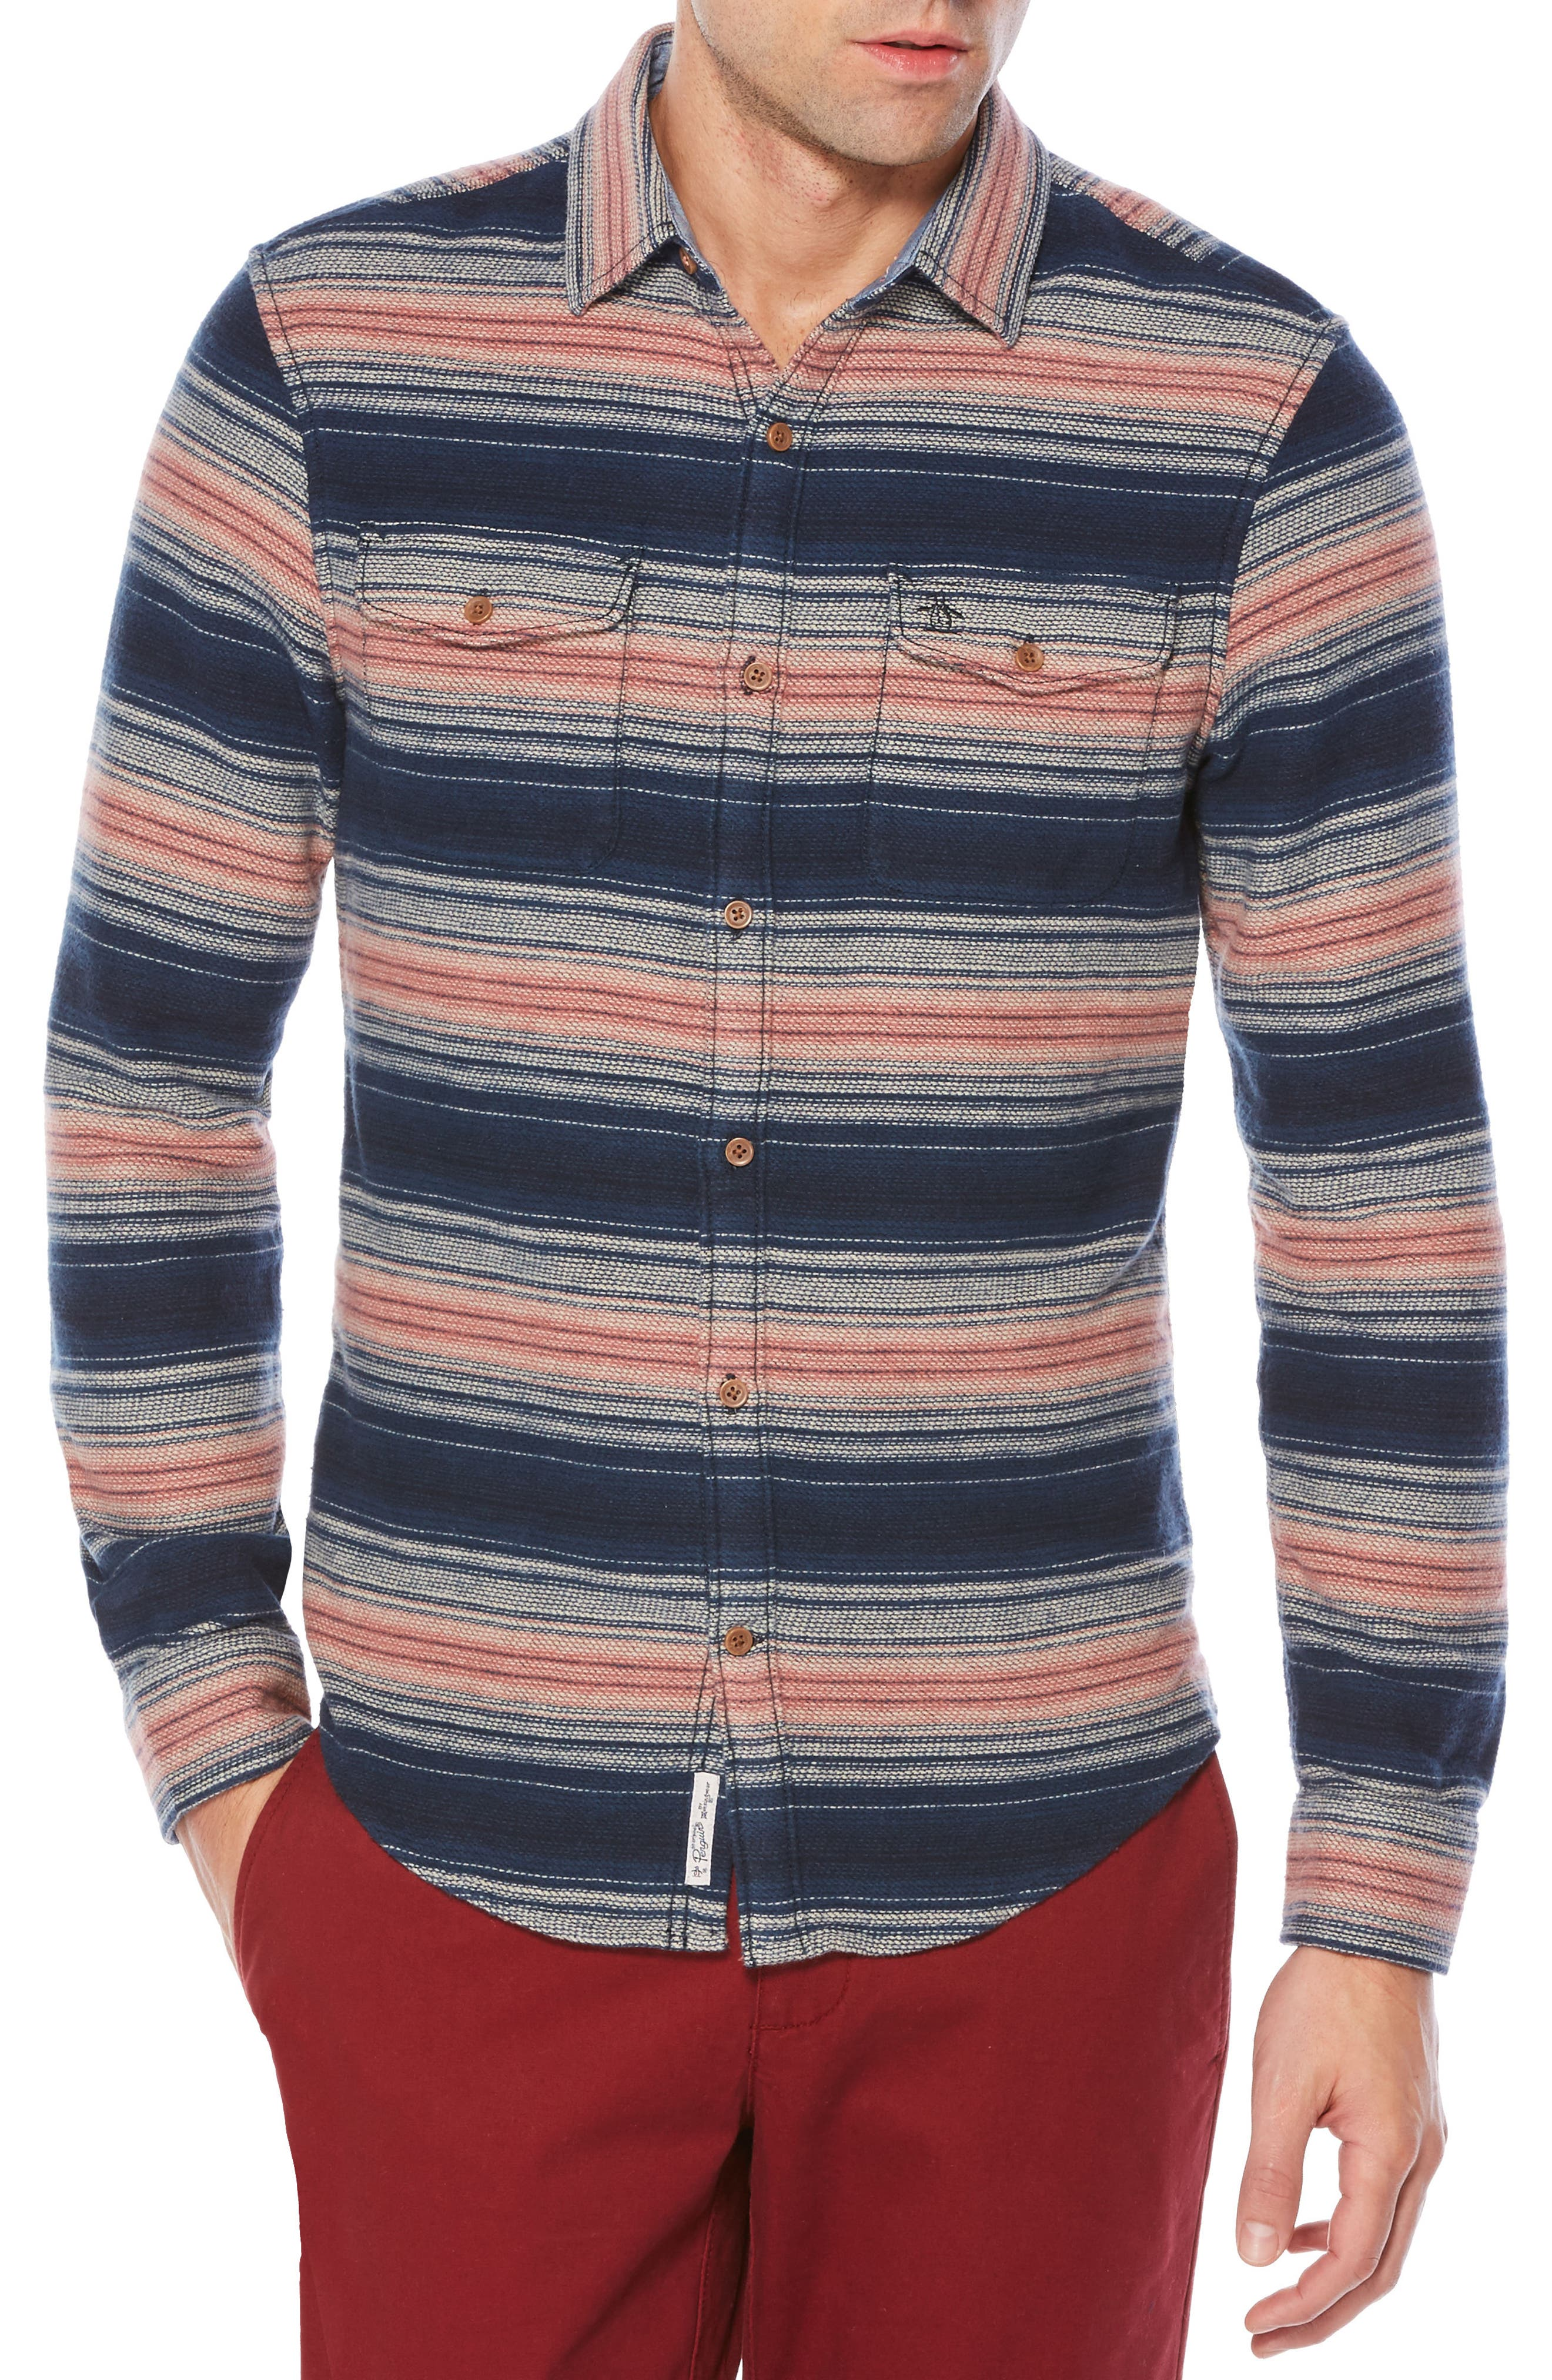 Brushed Flannel Shirt,                             Main thumbnail 1, color,                             413